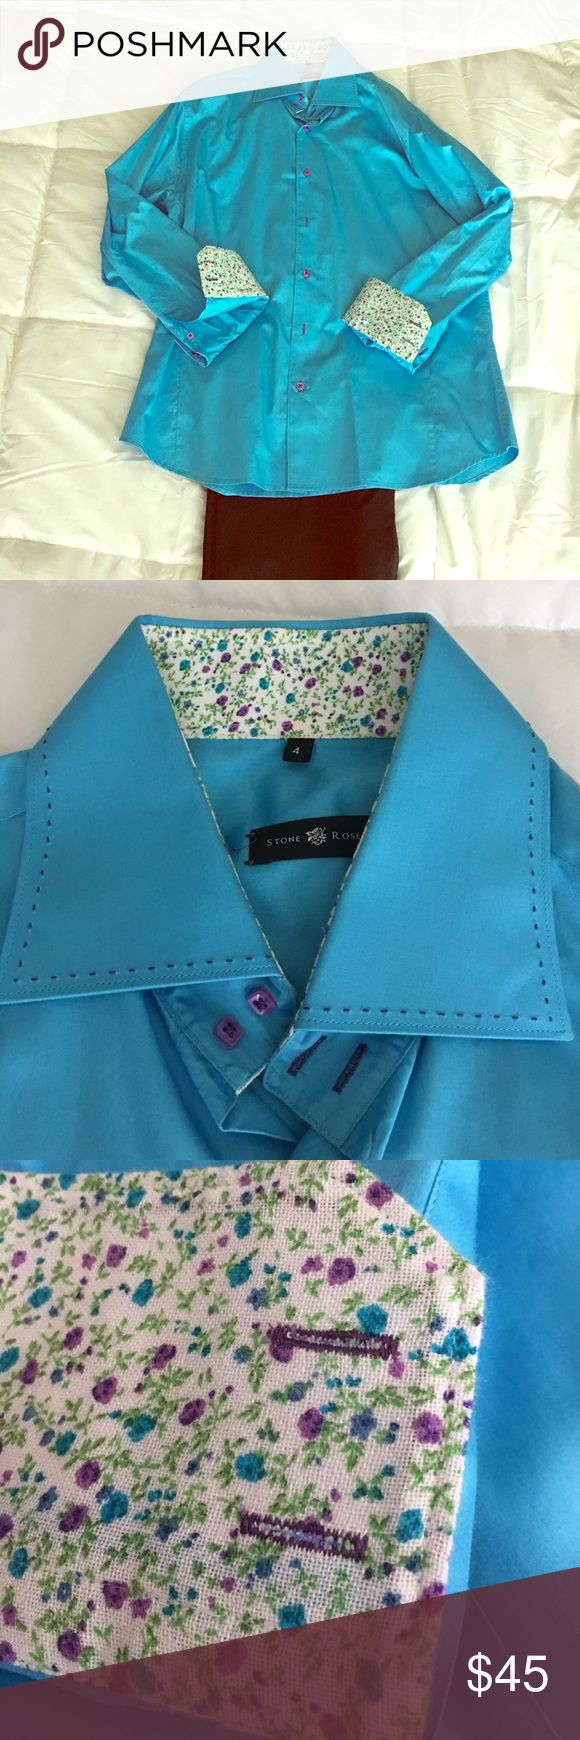 Stone Rose Men's Button Down- size L Mint Condition bright blue Stone Rose shirt with floral accents under cuffs and color. Stone Rose Shirts Dress Shirts